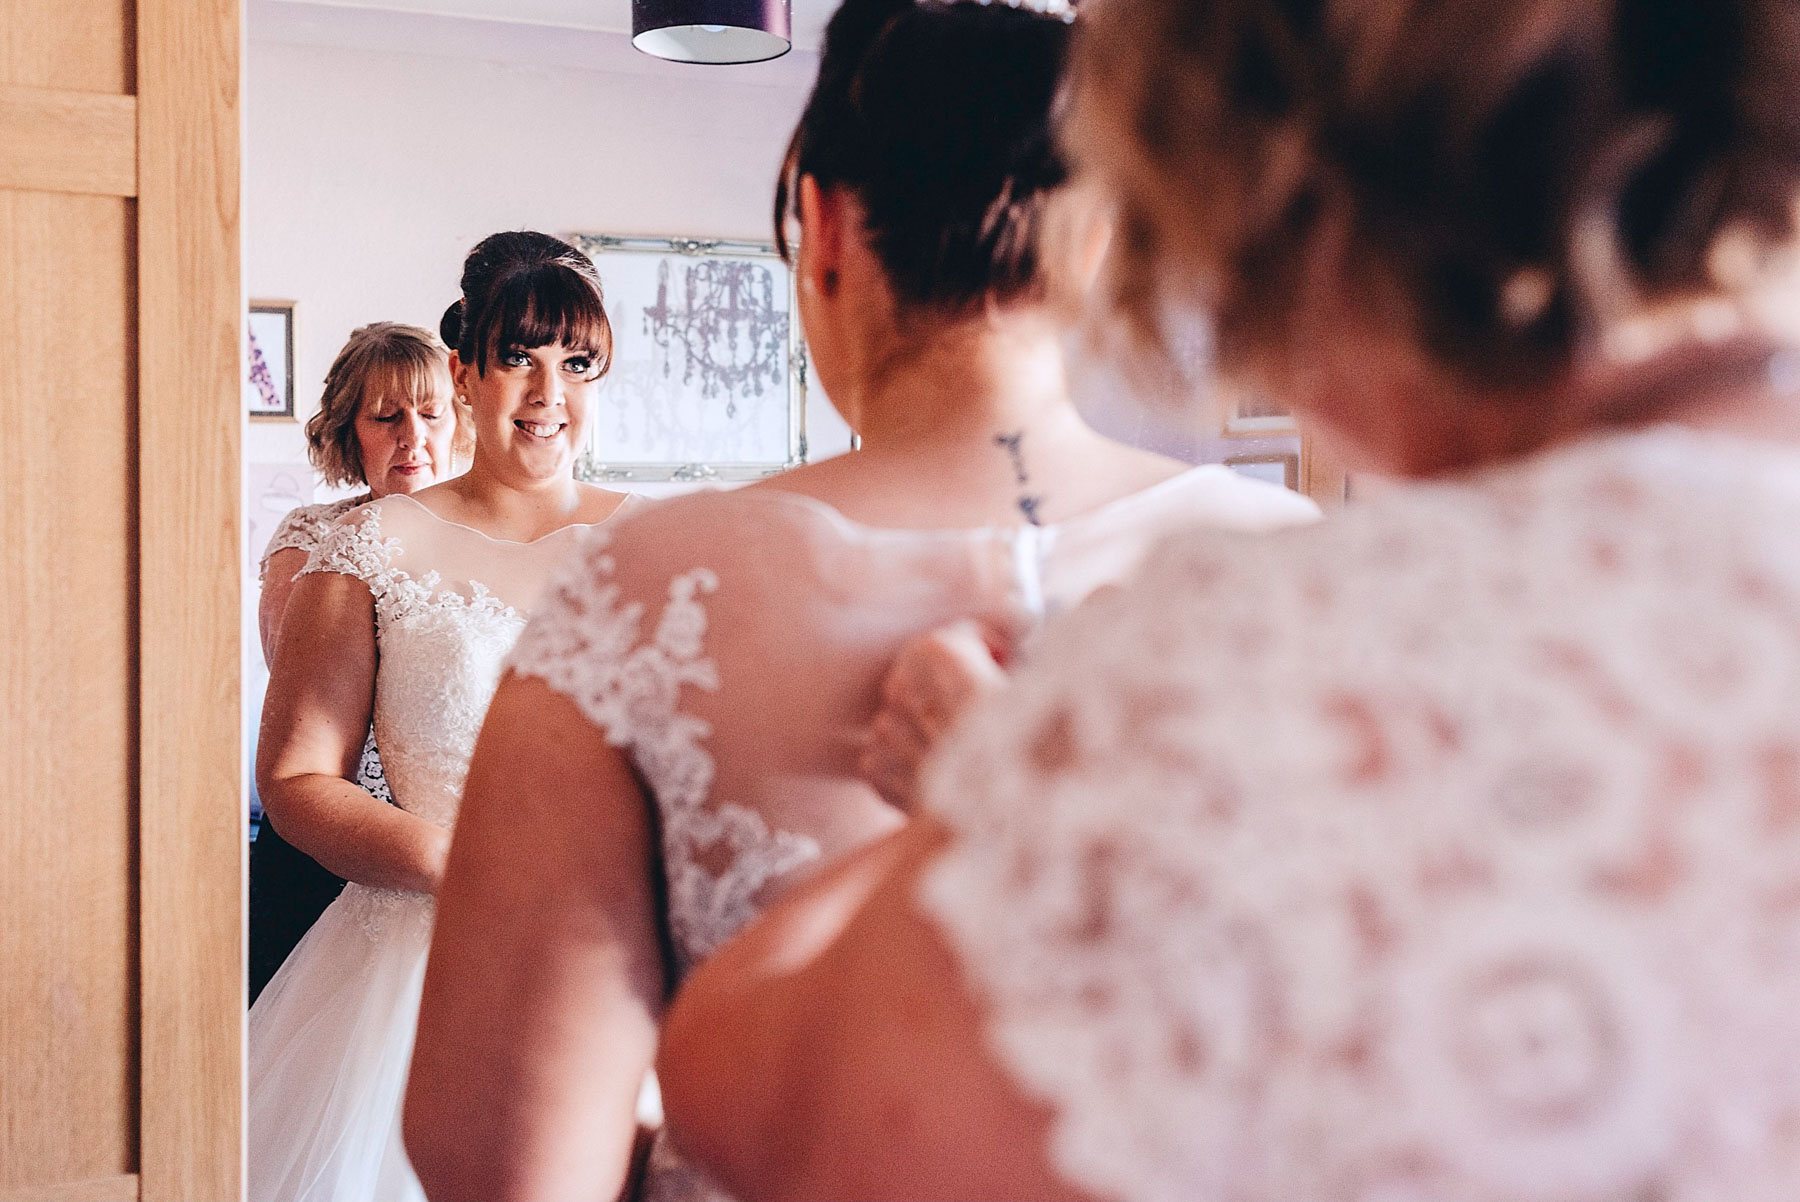 Bride looks in mirror as her mother helps her get ready